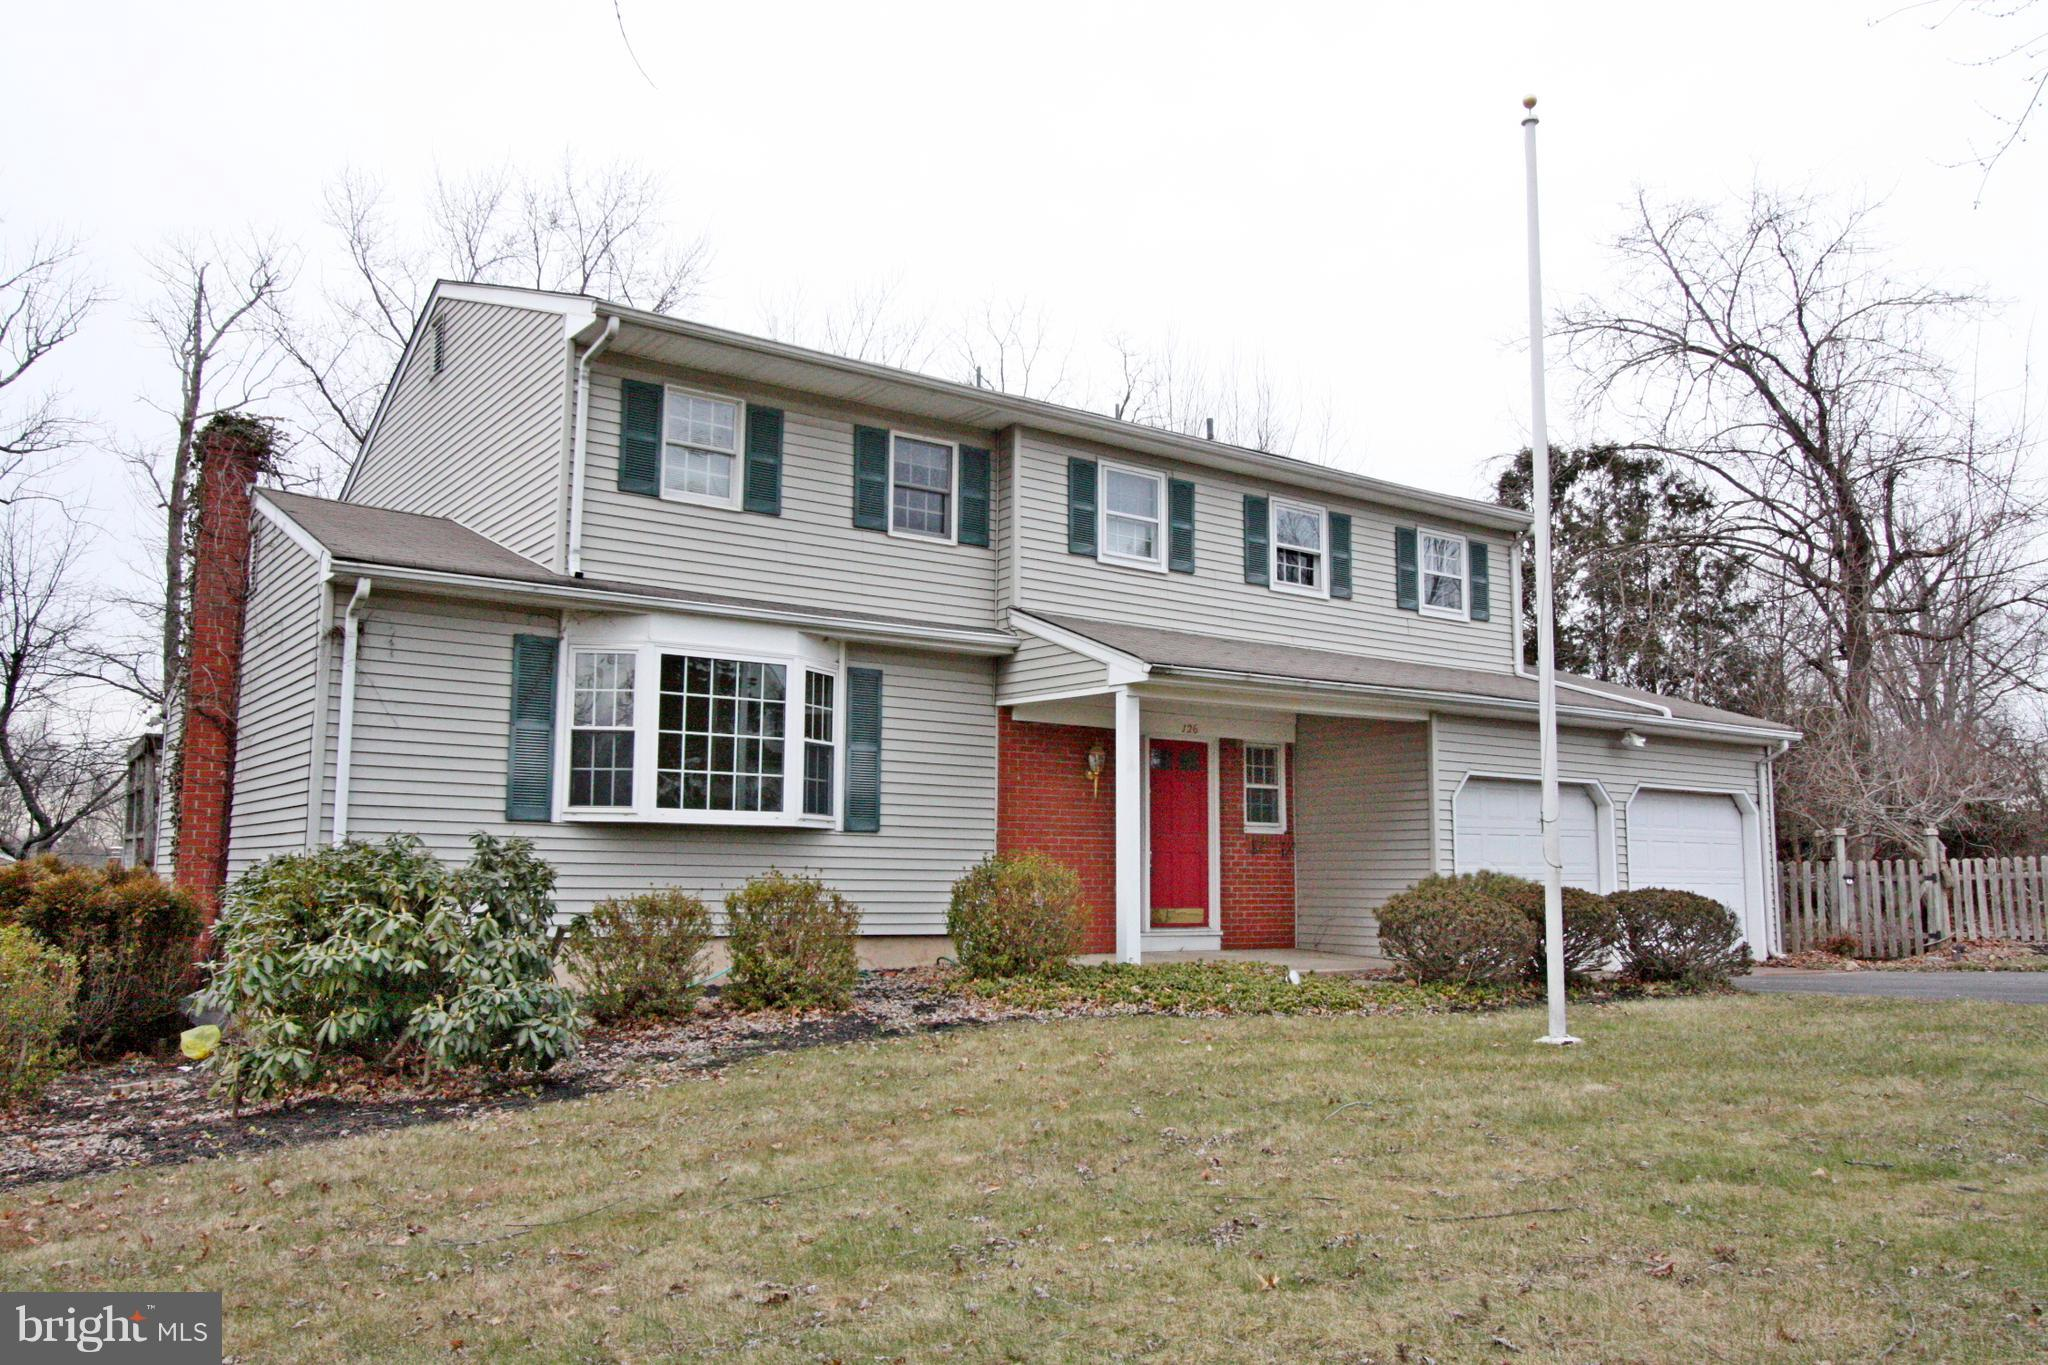 126 MOUNTAINVIEW ROAD, TITUSVILLE, NJ 08560